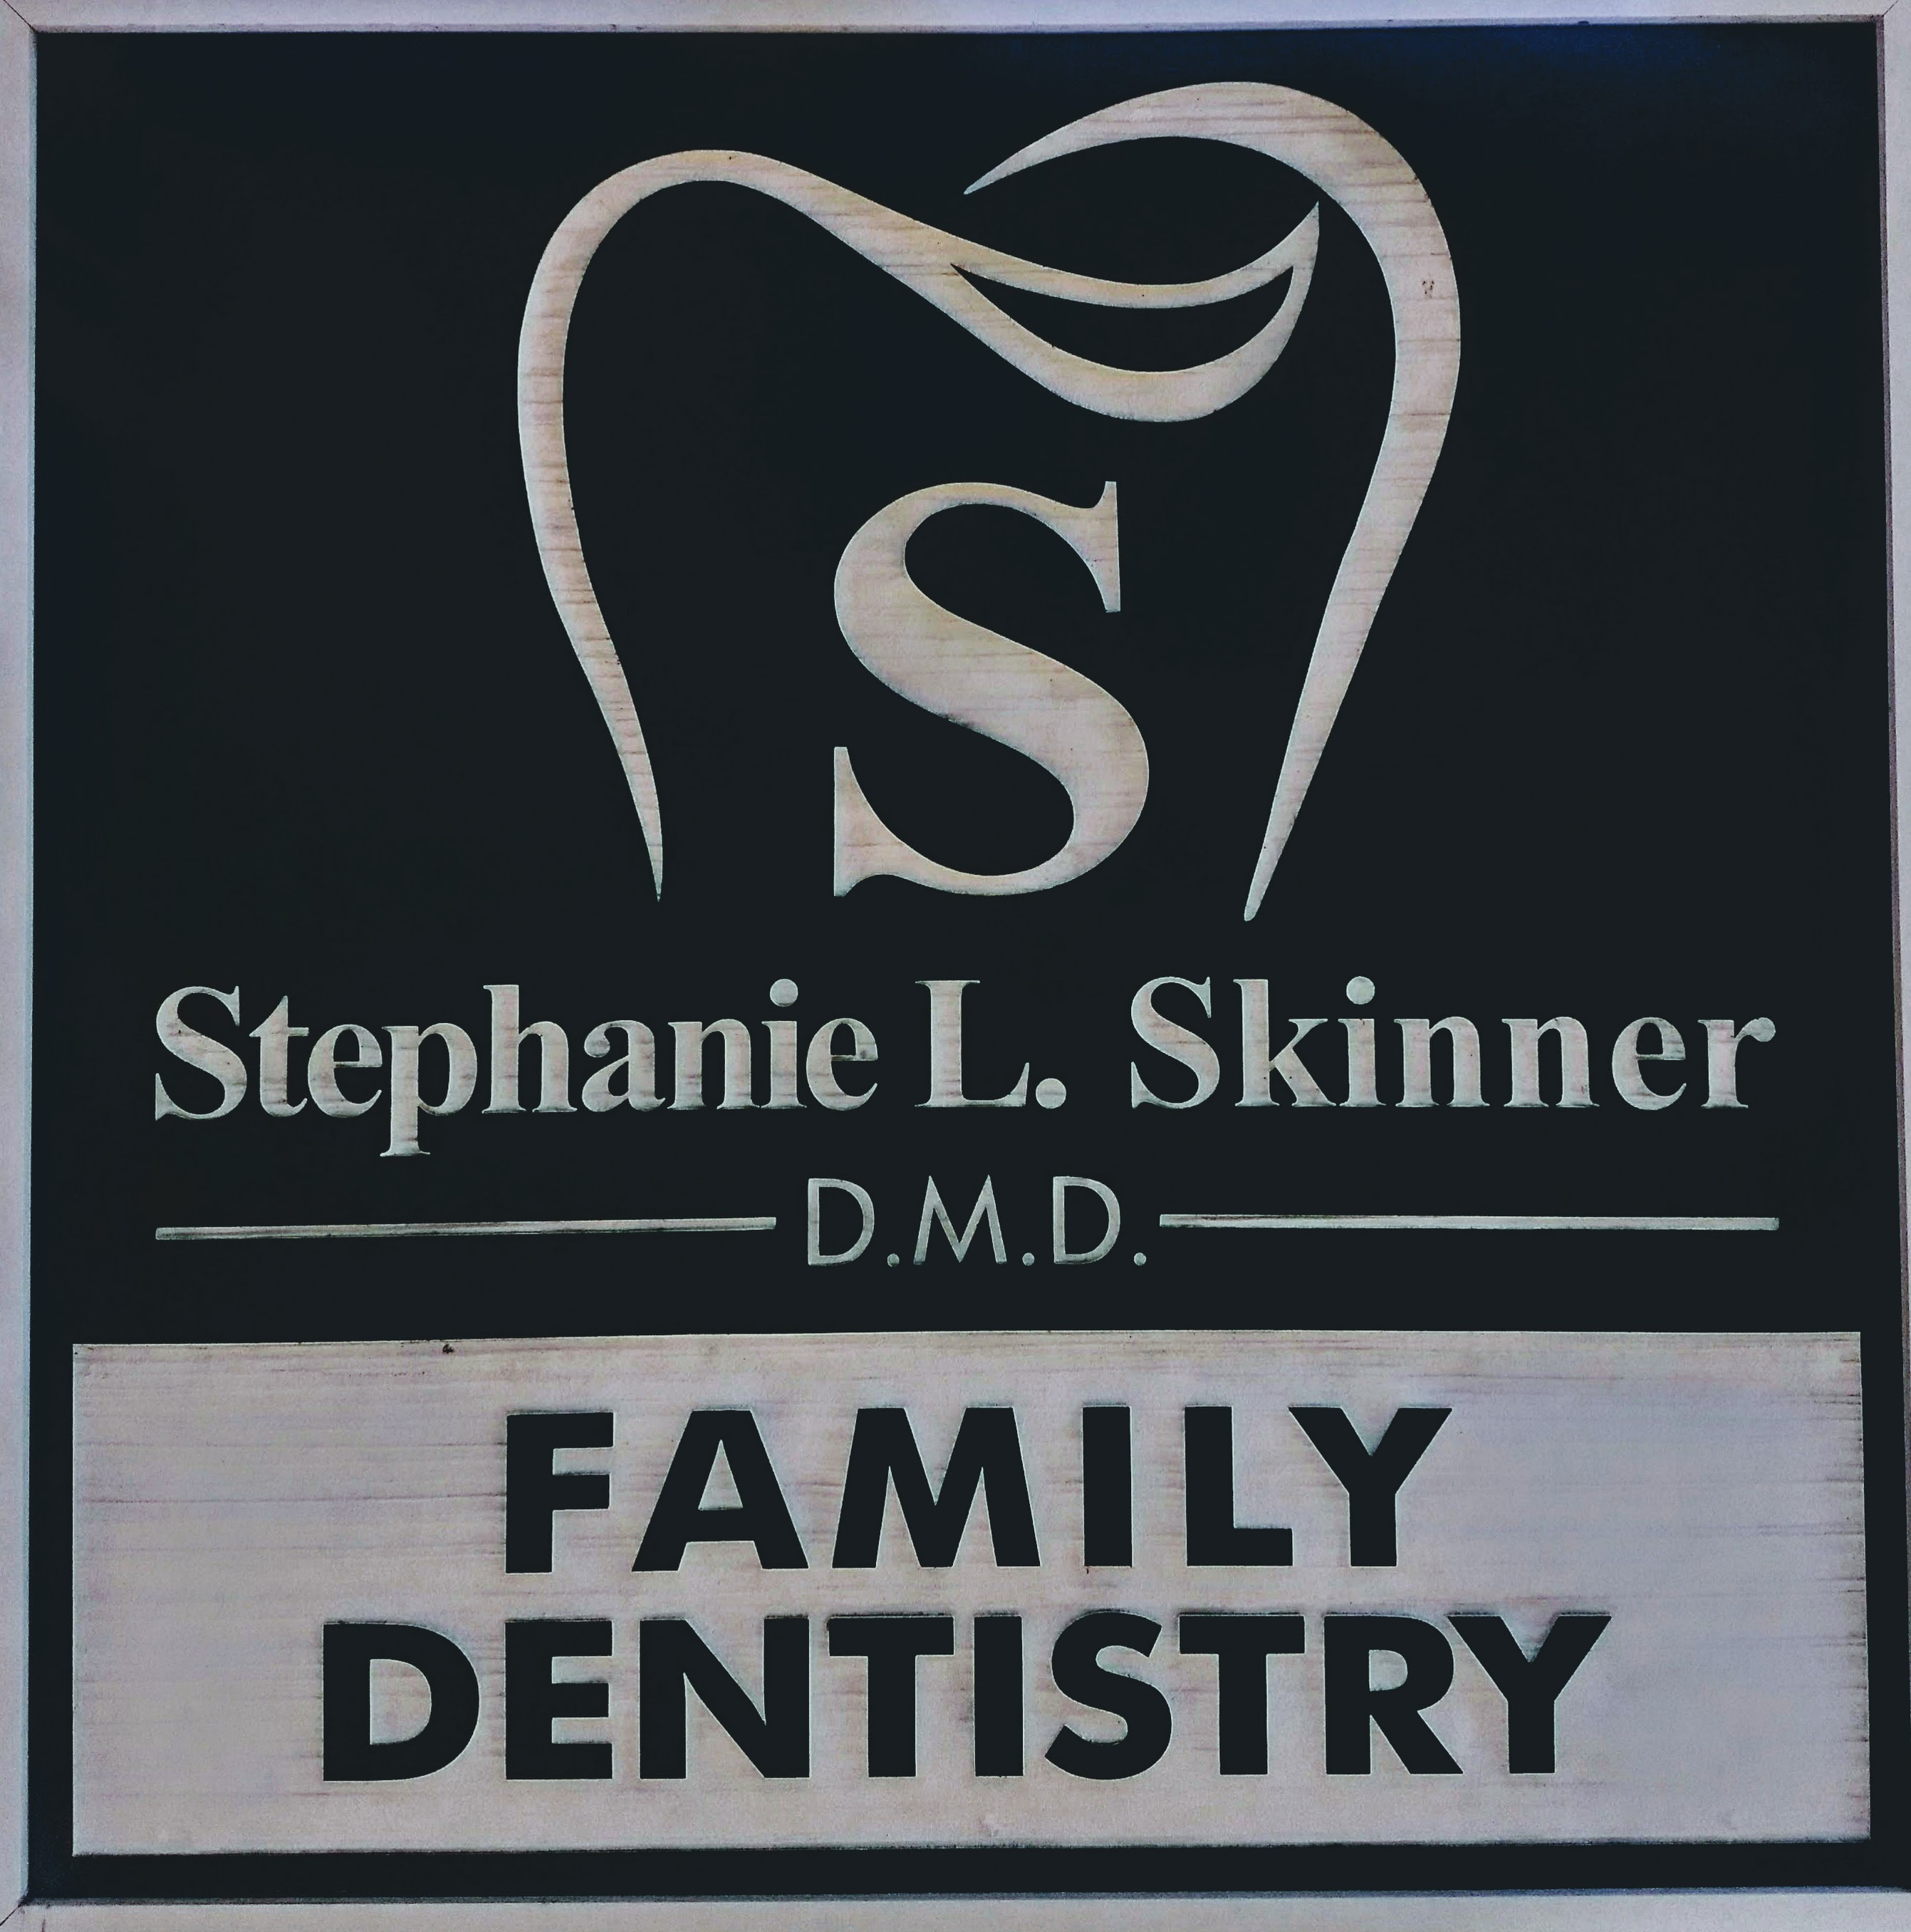 Skinners science of dental materials array dr stephanie l skinner family dentistry in savannah georgia rh slsfamilydentistry wixsite fandeluxe Image collections